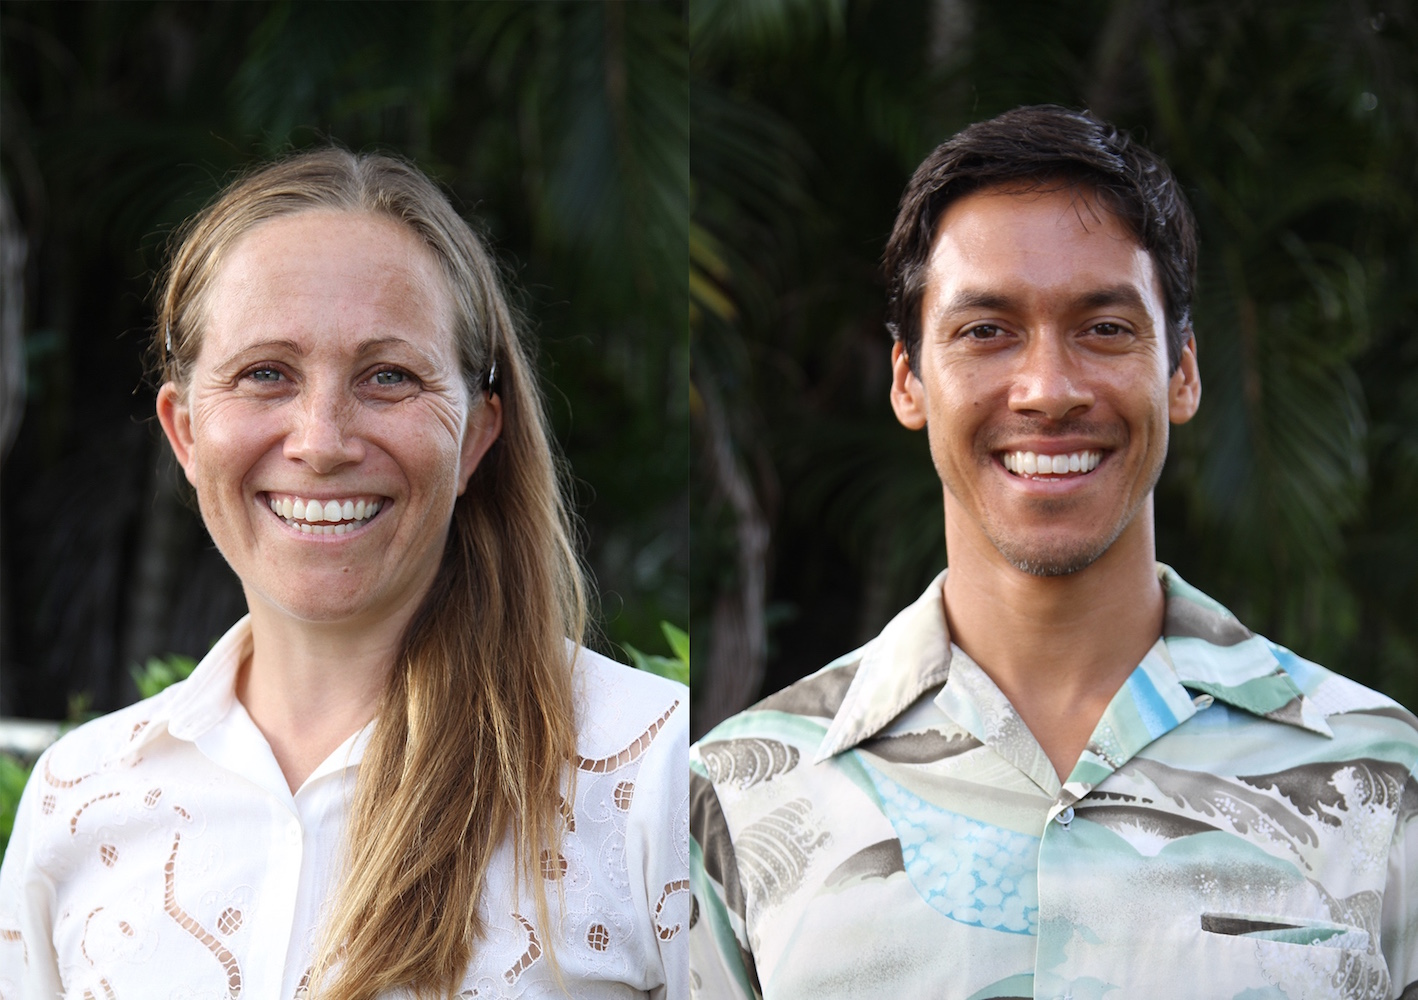 Catia Garell '01 (left) and Damian Sempio '01 (right). Photo by Ka'ai Nalua'i-Sempio